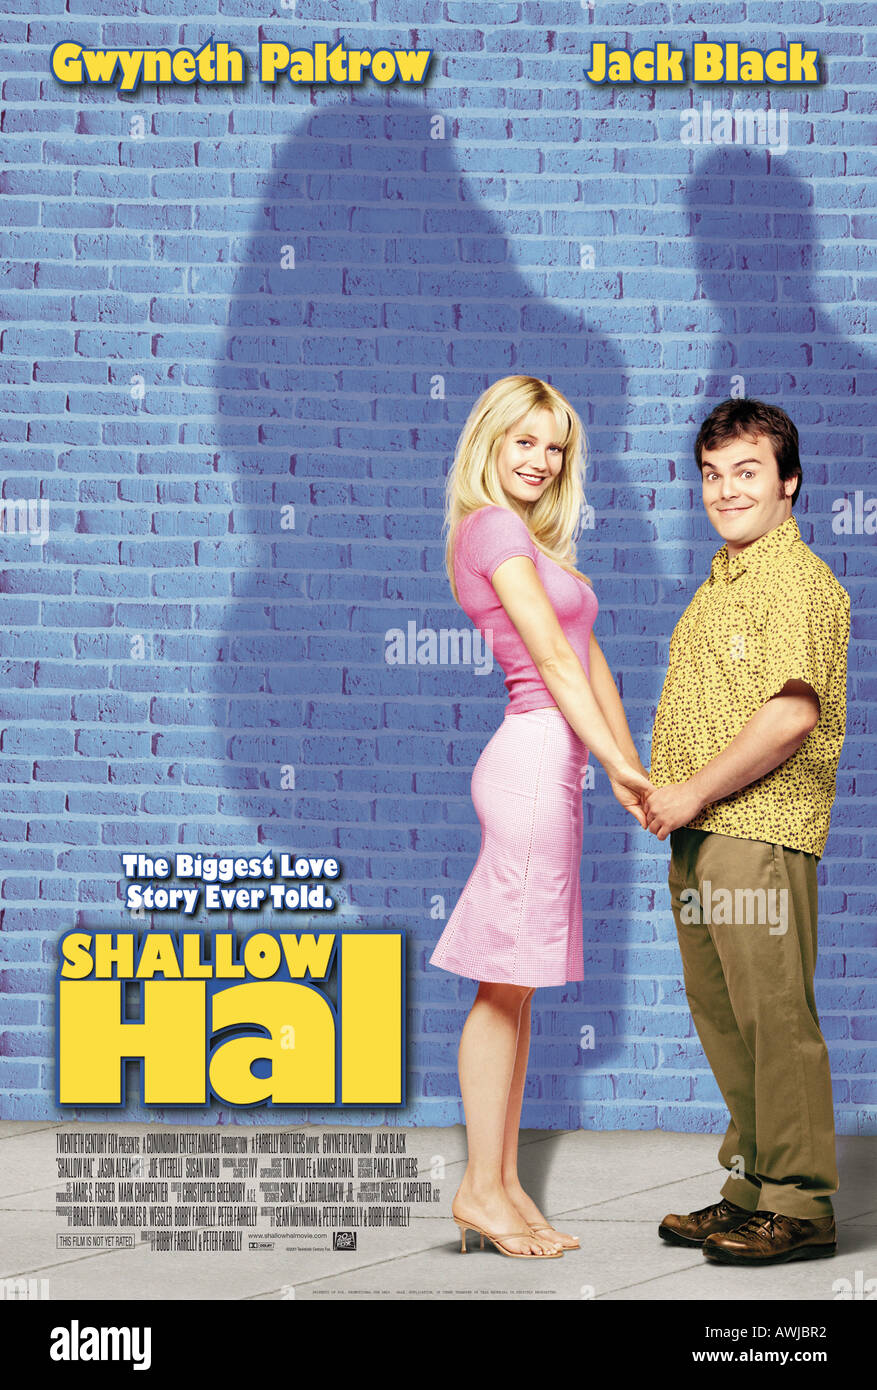 SHALLOW Hal poster per 2001 Twentieth Century Fox Film con Gwyneth Paltrow e Jack Black Immagini Stock